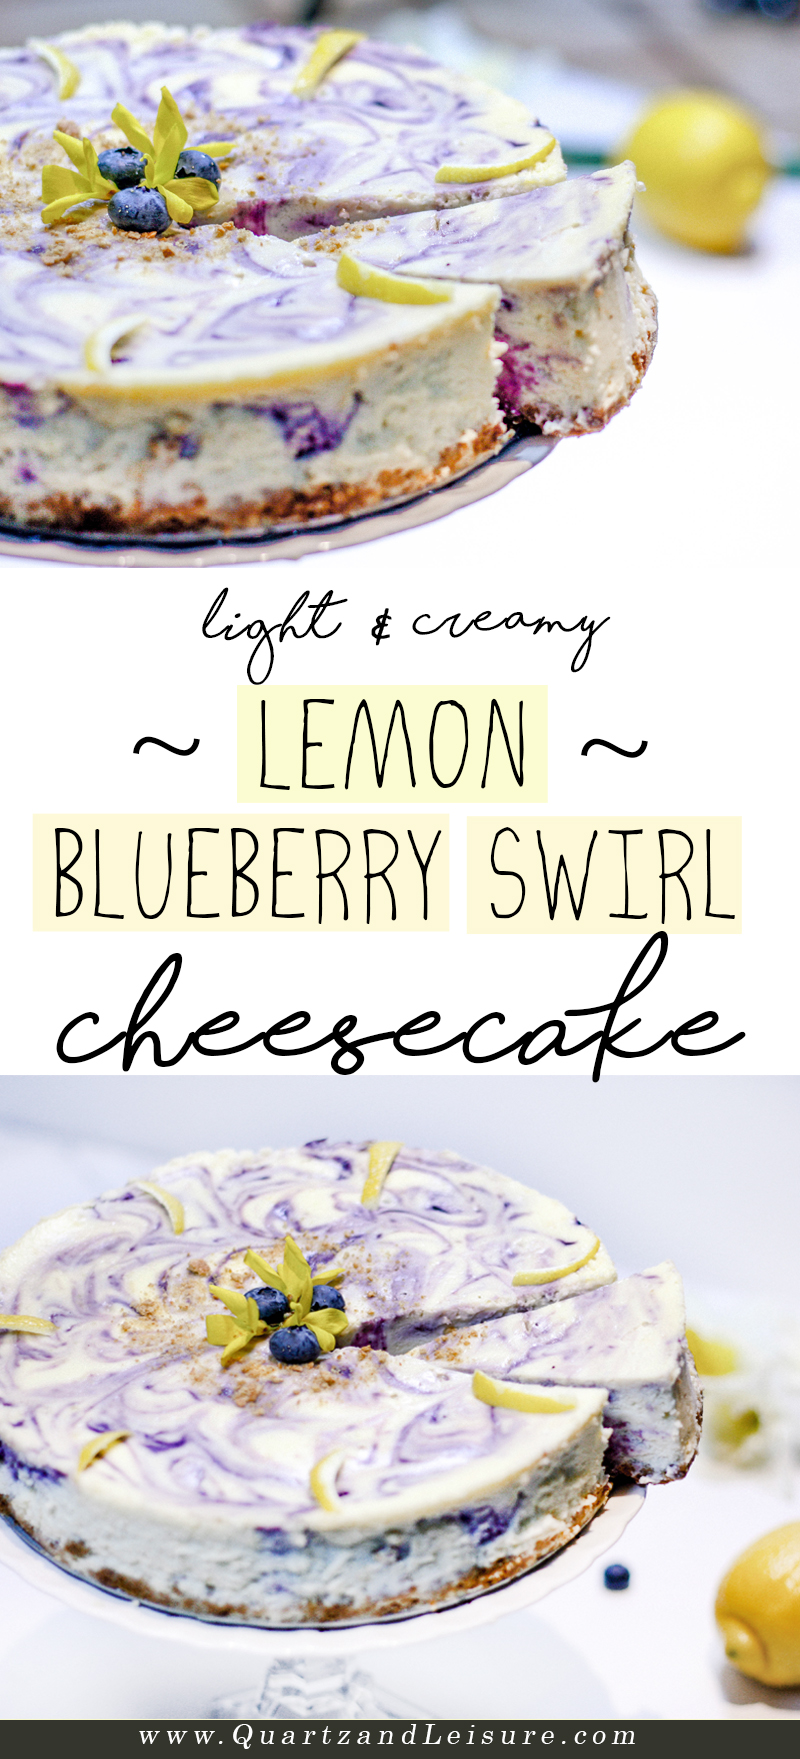 Lemon Blueberry Swirl Cheesecake - Quartz & Leisure